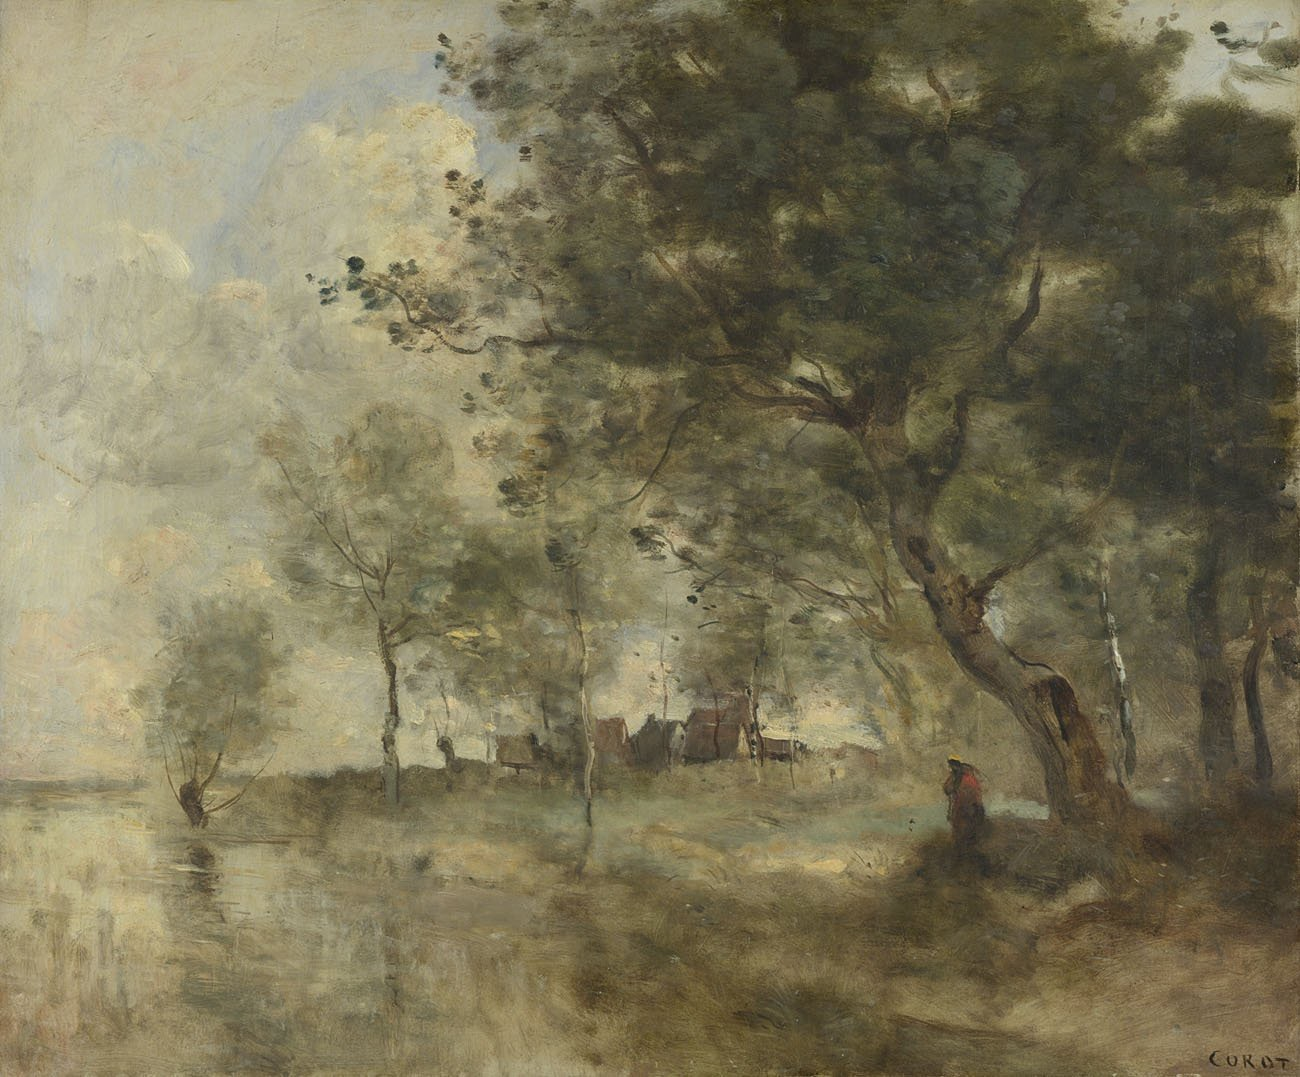 A Flood, by Jean-Baptiste-Camille Corot